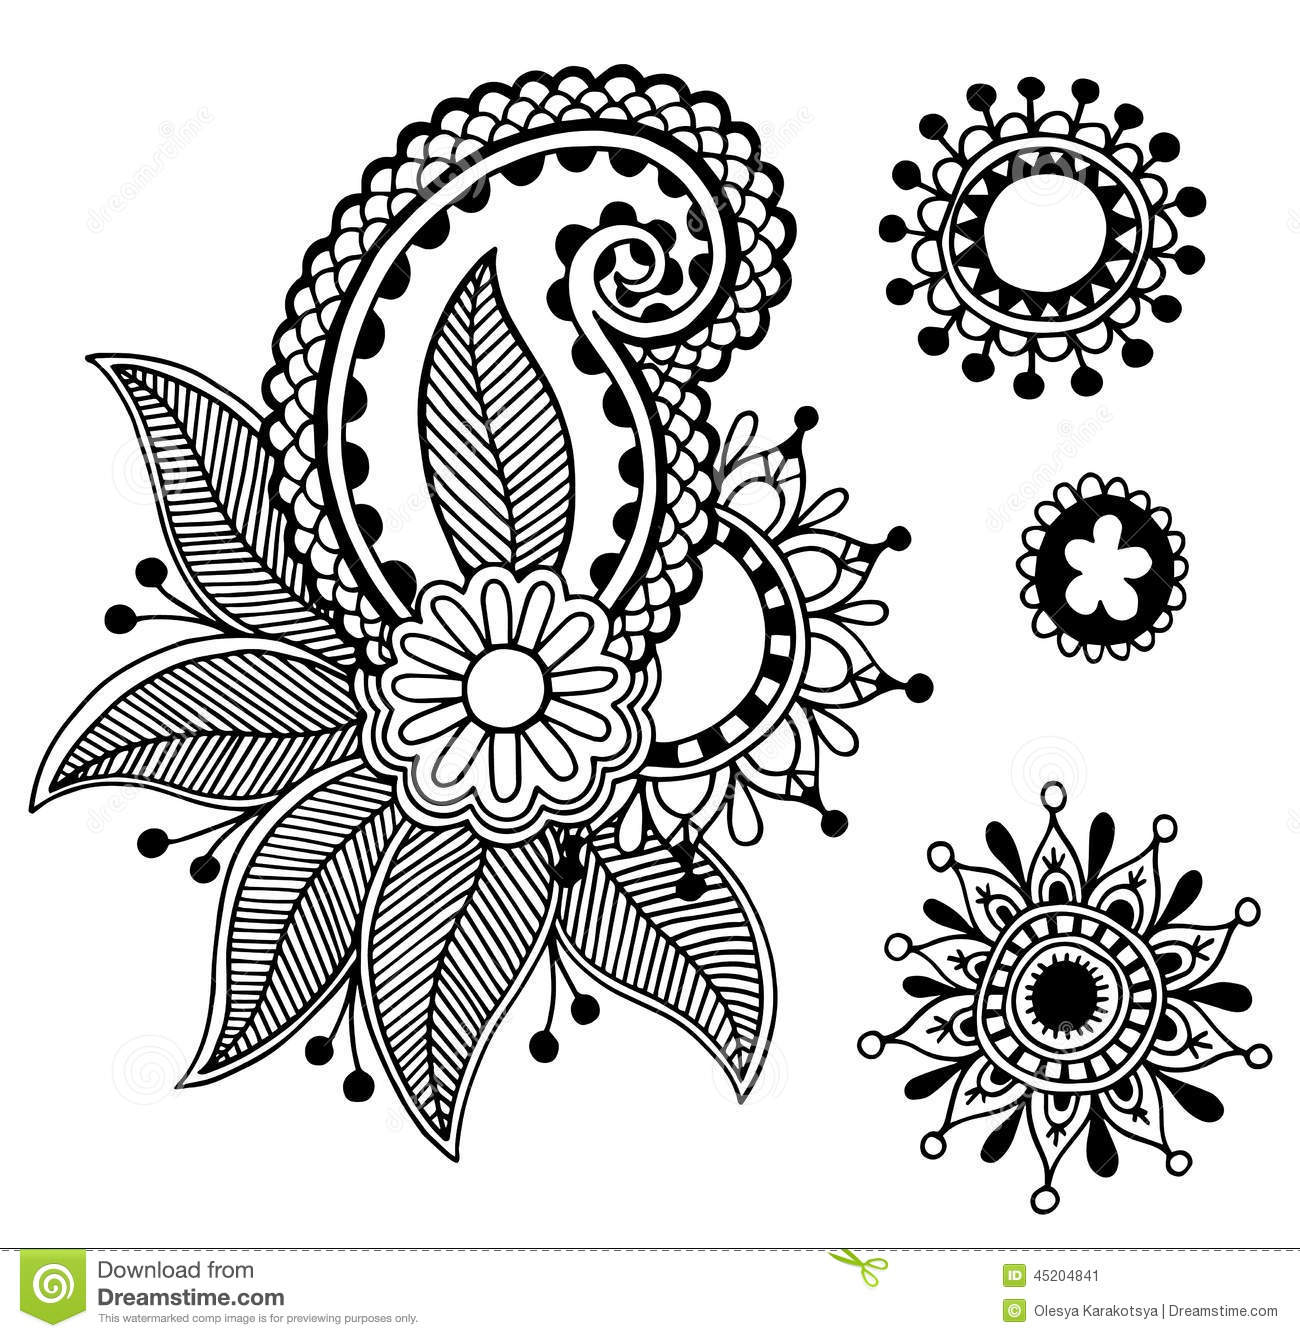 Black And White Line Designs : Black line art ornate flower design collection stock